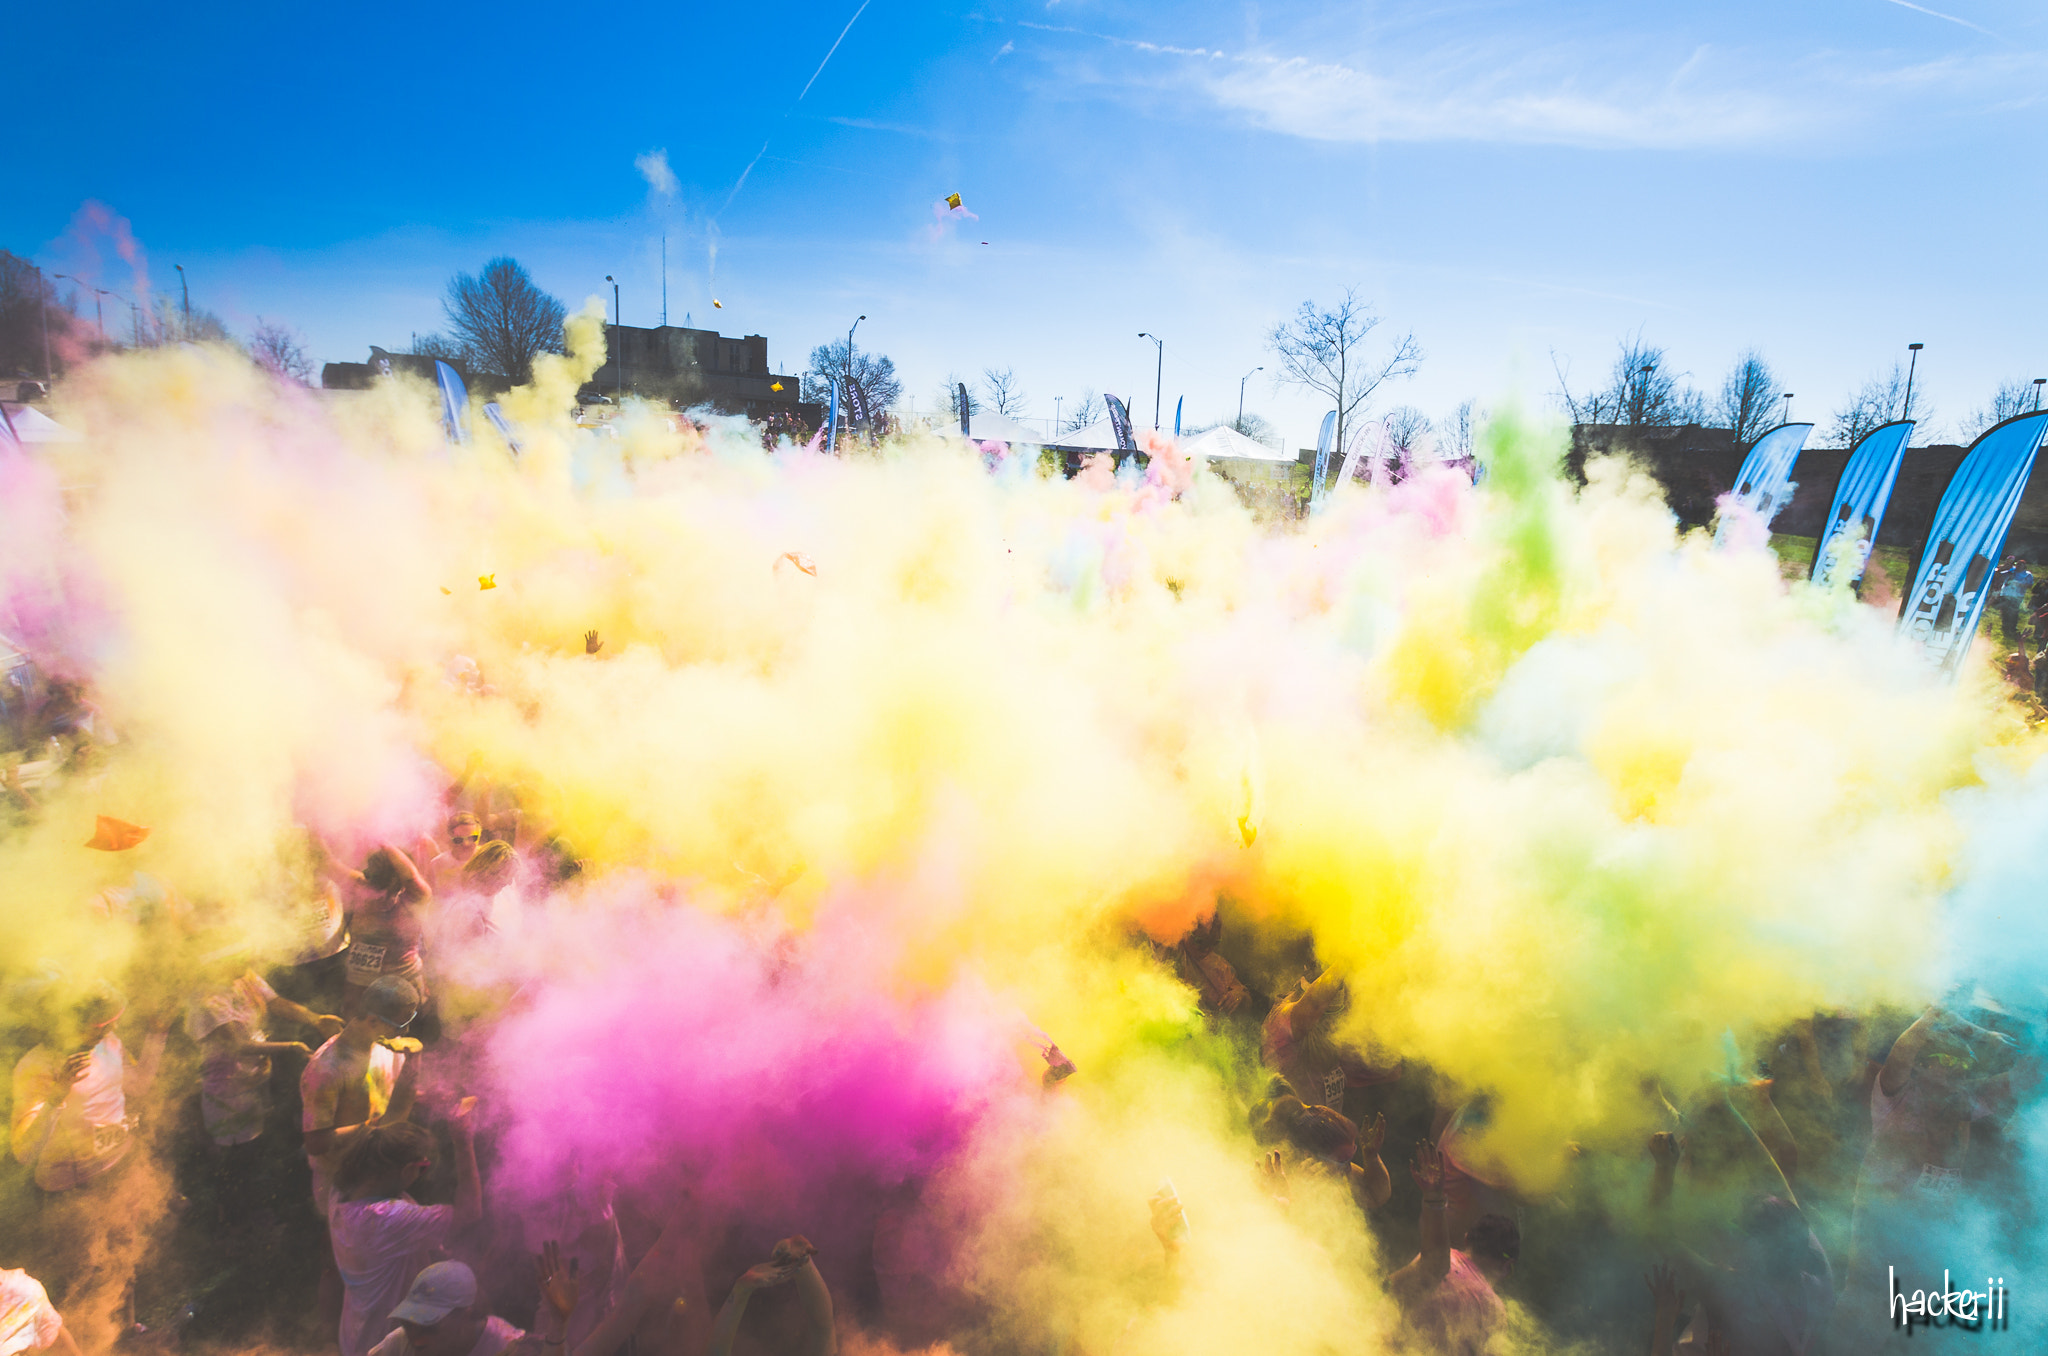 Photograph color me rad 5k knoxville 2013 by Joe Hacker on 500px